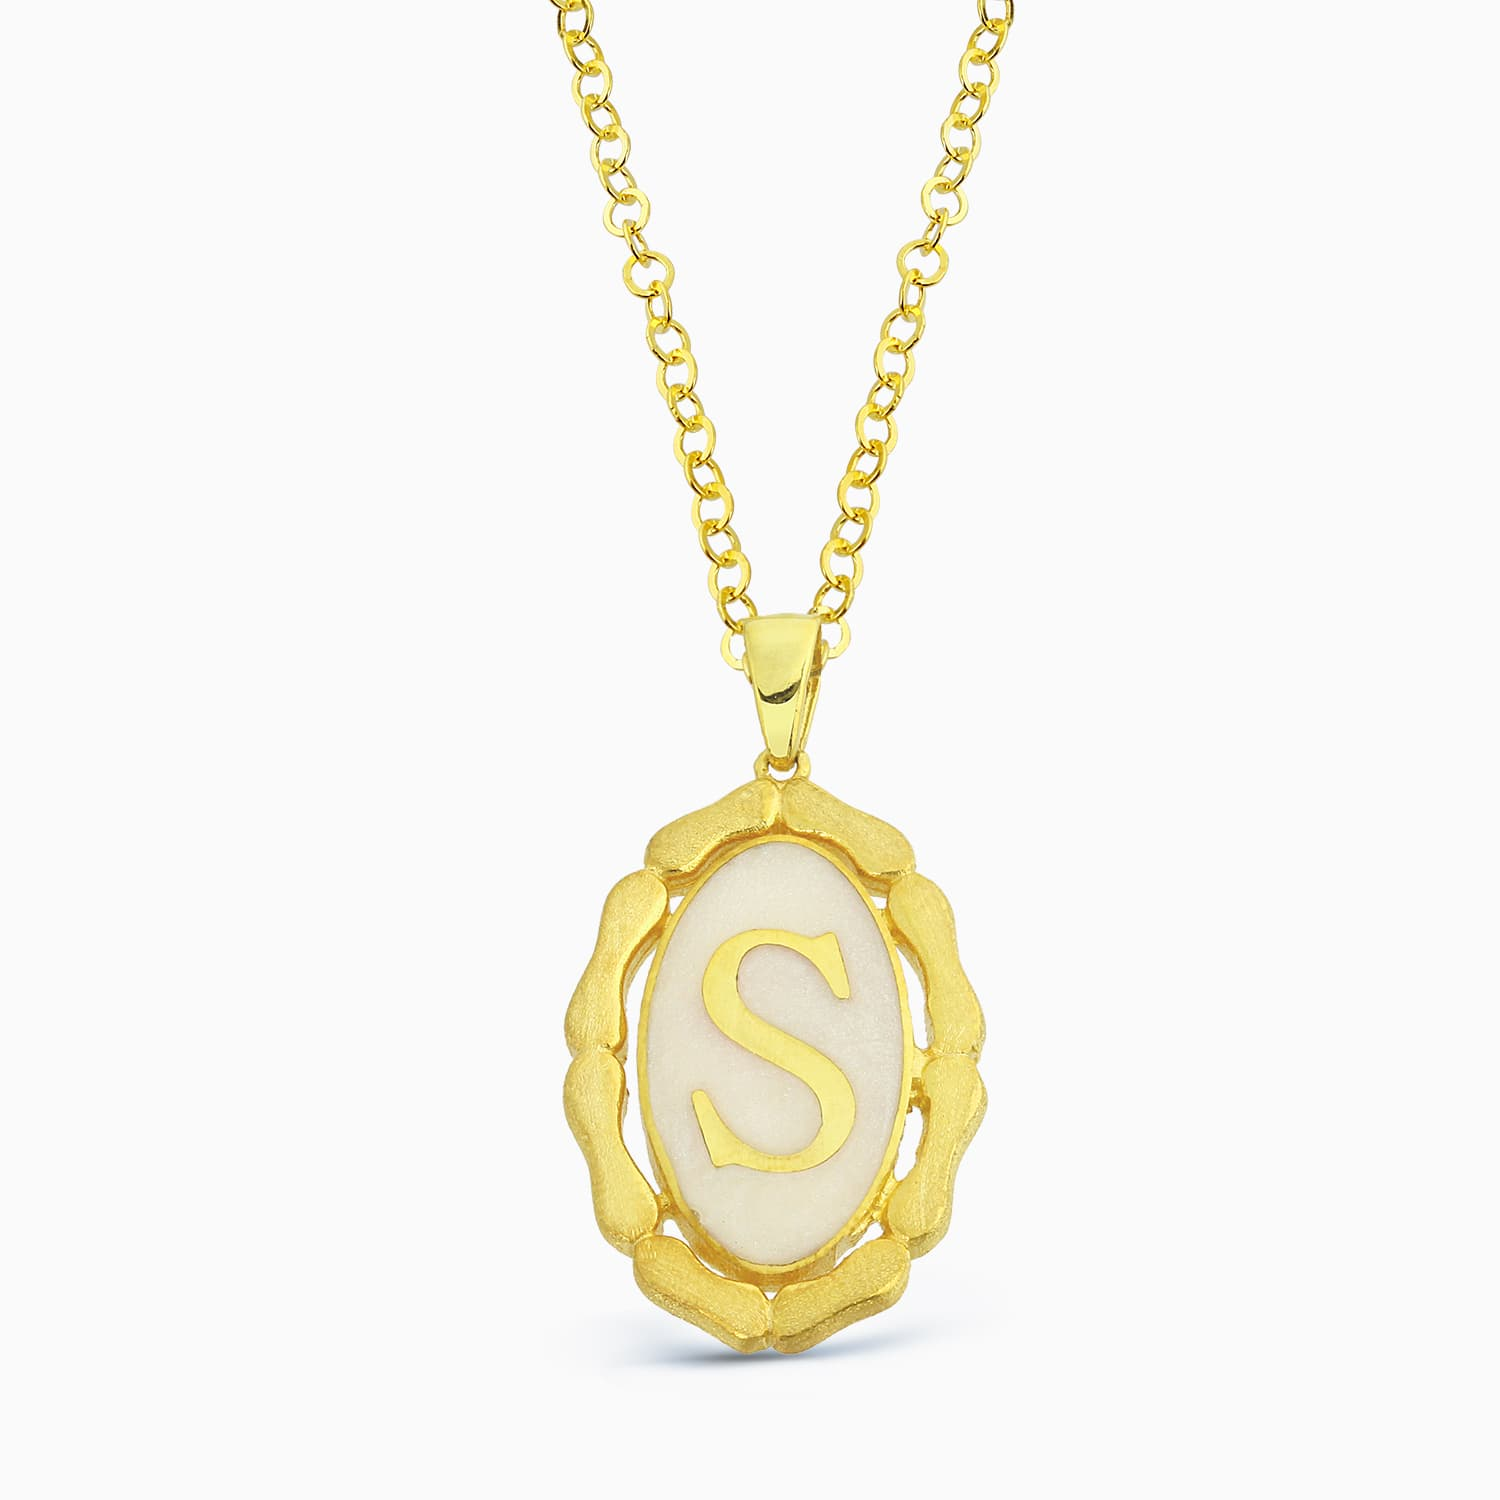 LETTER S MINNED NECKLACE